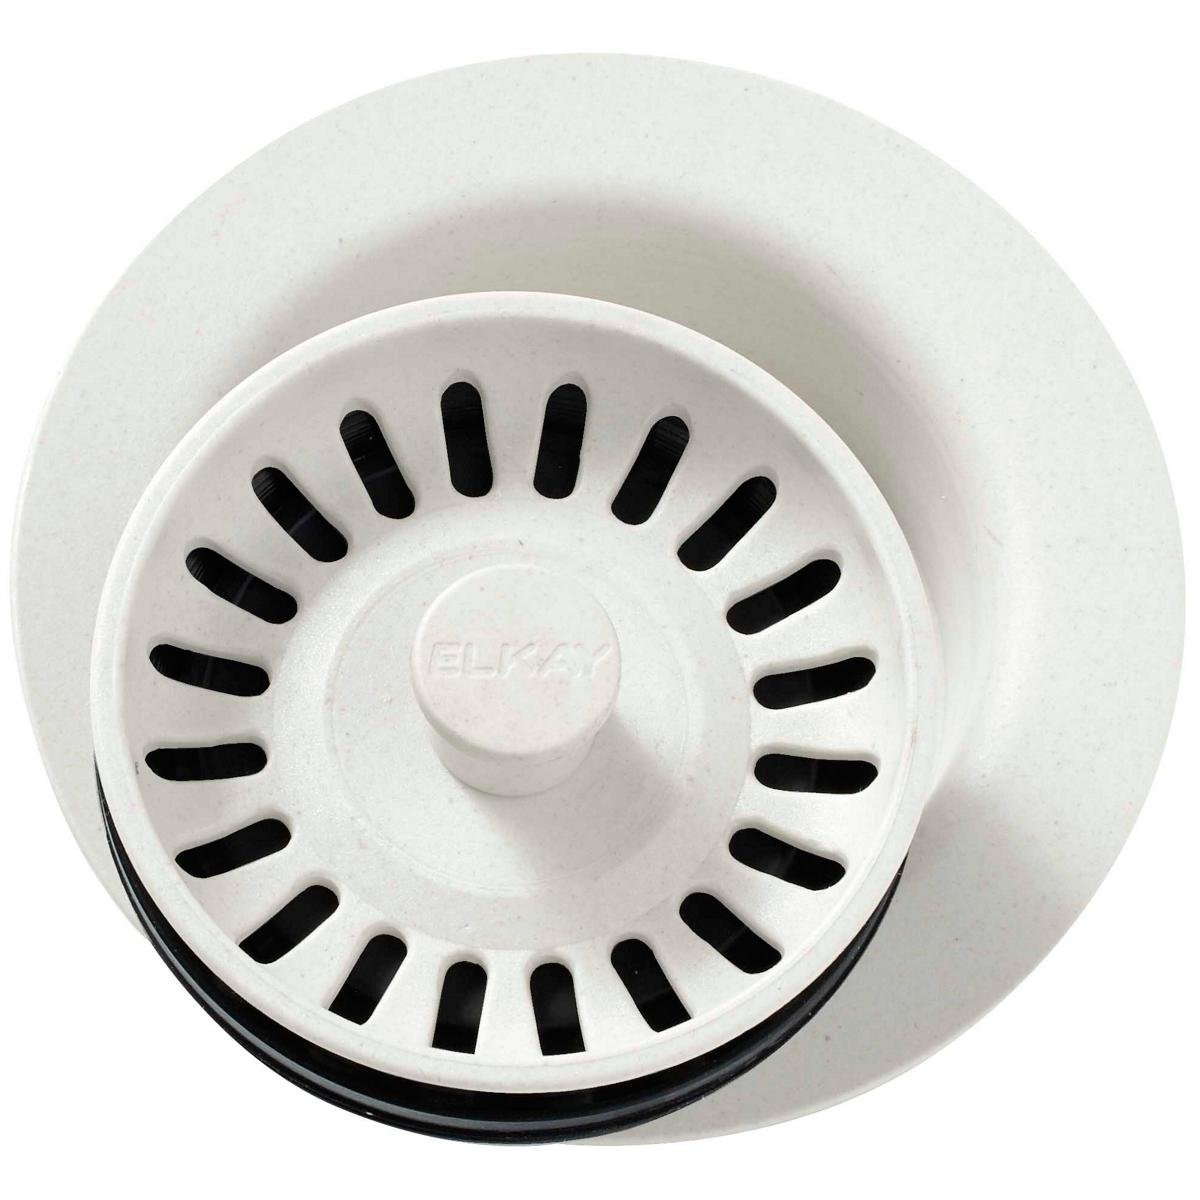 Elkay LKQD35PA Parchment Polymer Disposer Flange with Removable Basket Strainer and Rubber Stopper